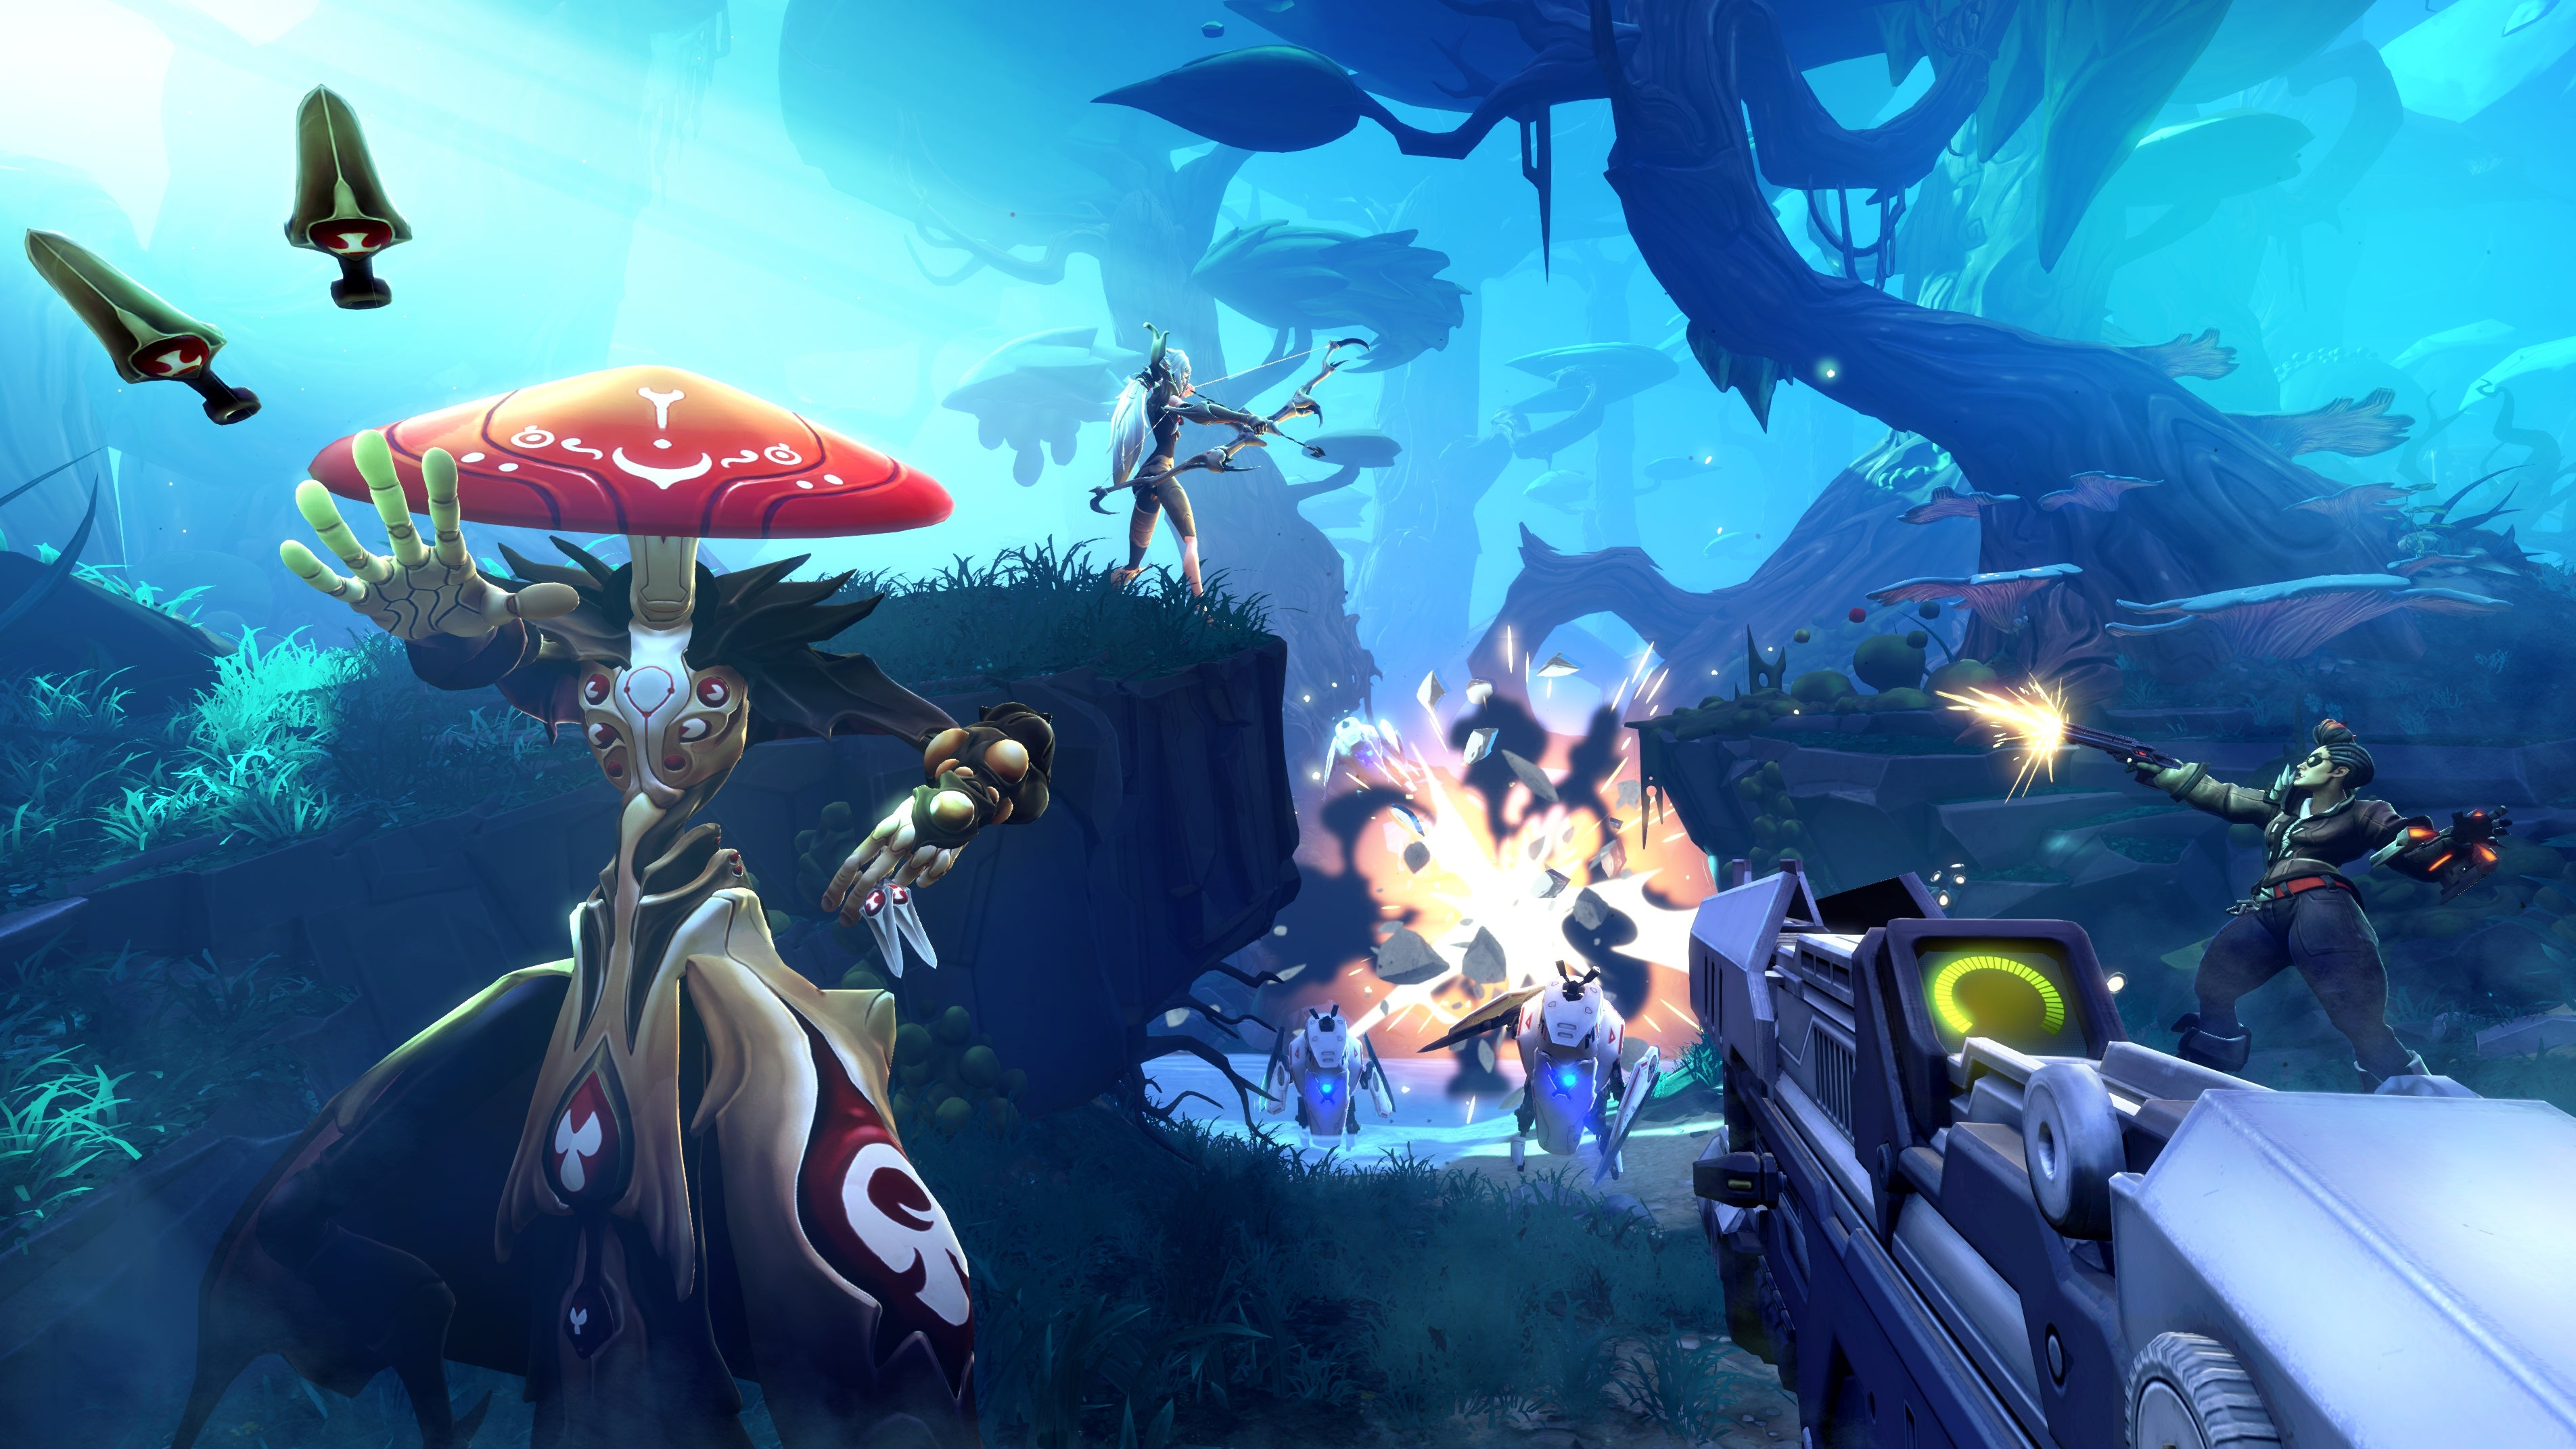 Gearbox's Next Big Game Is Going to Be Very Different from Borderlands